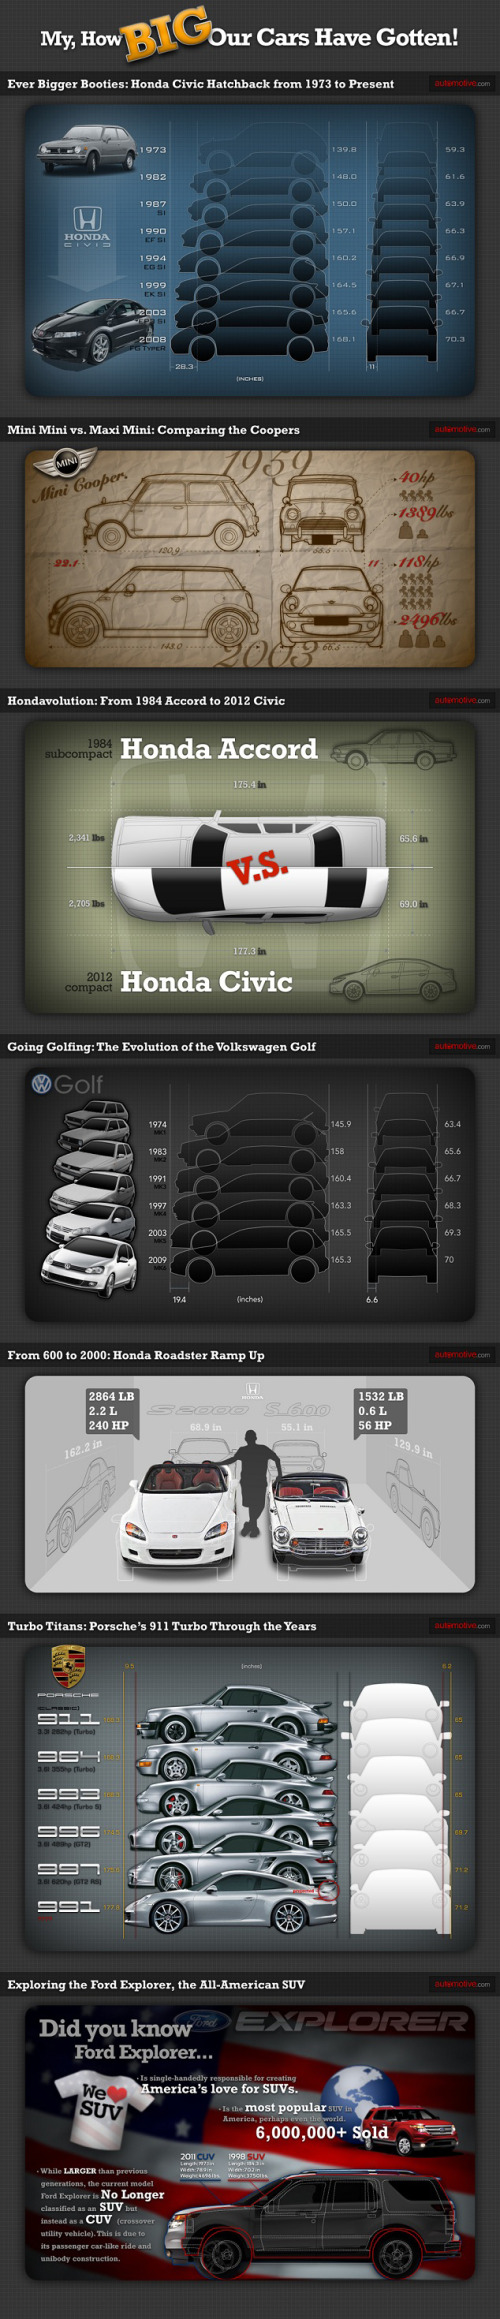 Car Sizes Through the Years infographic